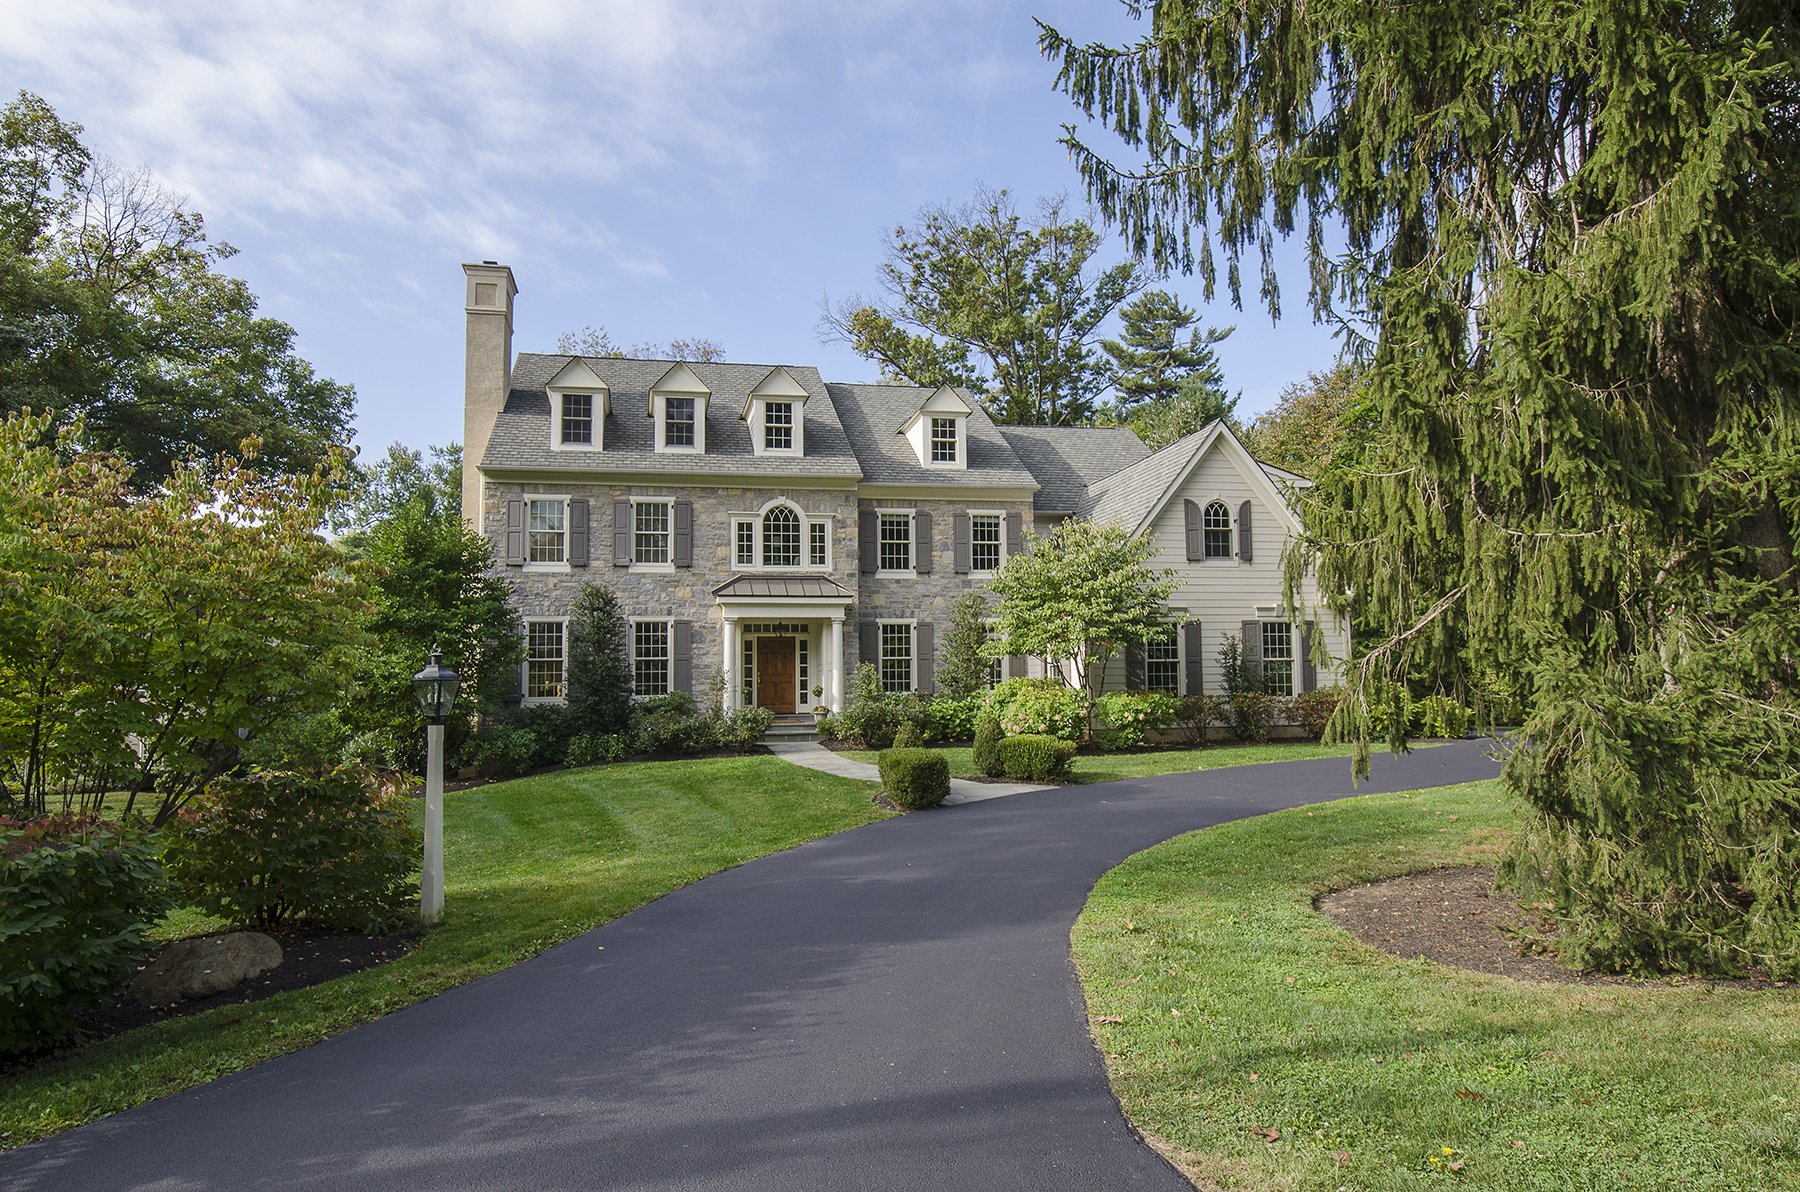 Single Family Home for Sale at Prestigious Radnor Colonial 314 Edgehill Road Narberth, 19072 United States